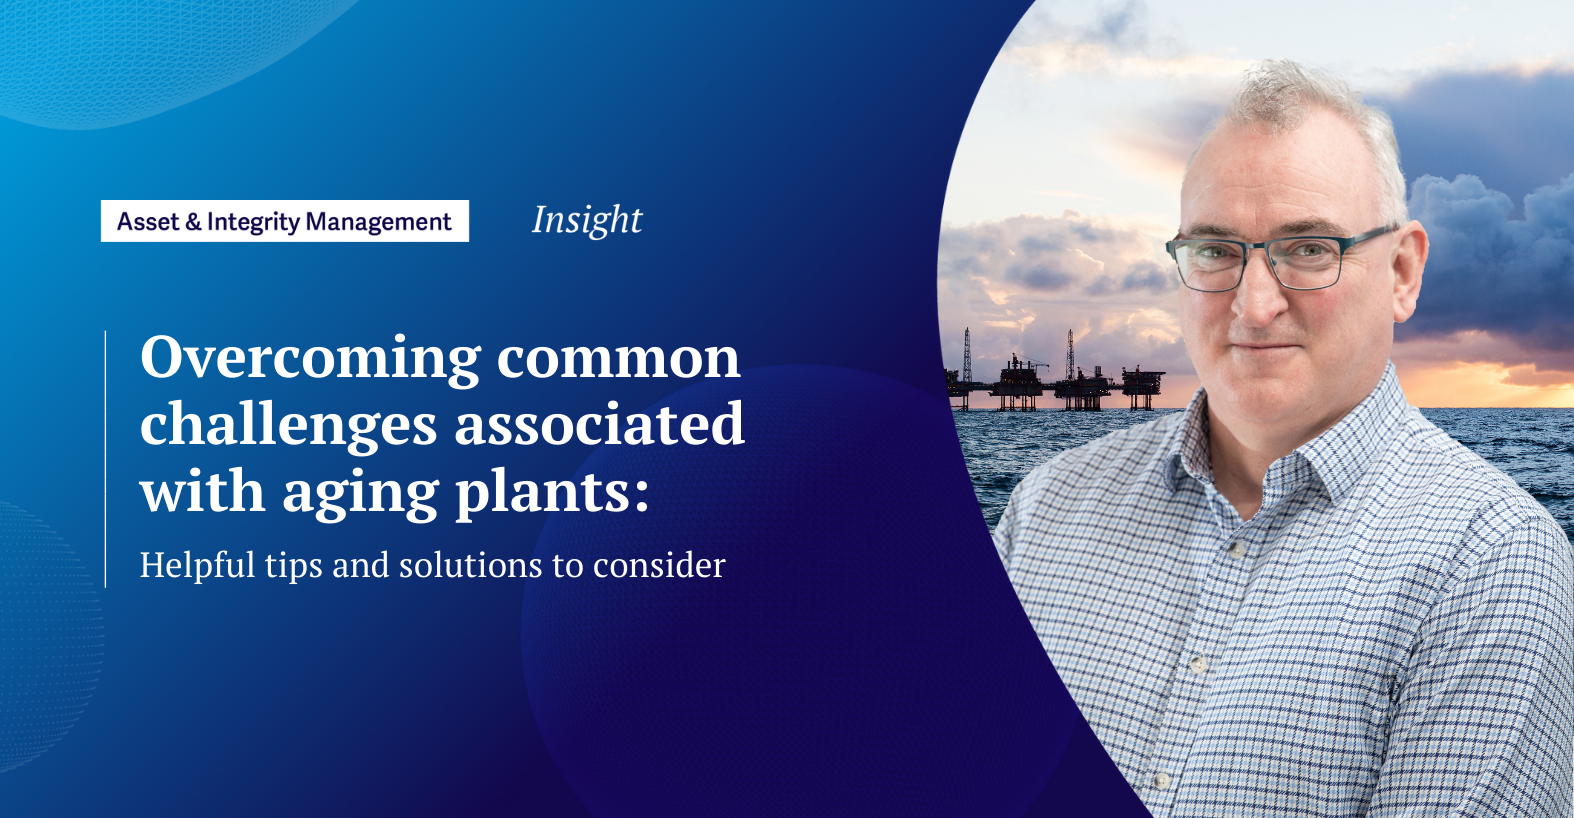 Overcomingcommon challenges associated with agingplants